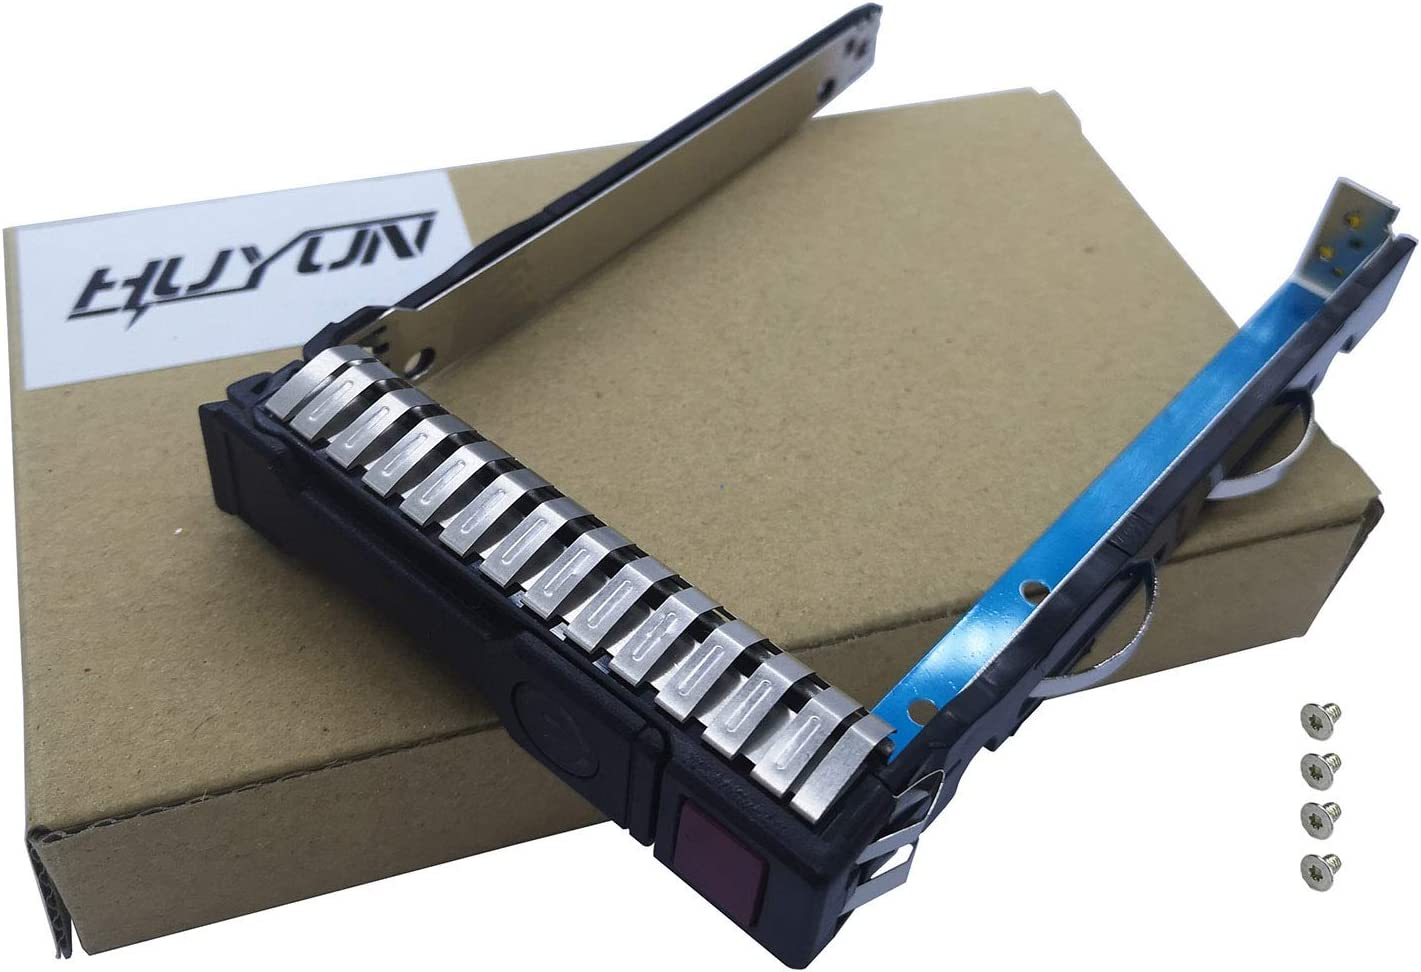 2.5 to 3.5 SSD Adapter 661914-001 for HP 651314-001 SAS//SATA Tray Caddy Compatible with G8 /& Gen9 Server